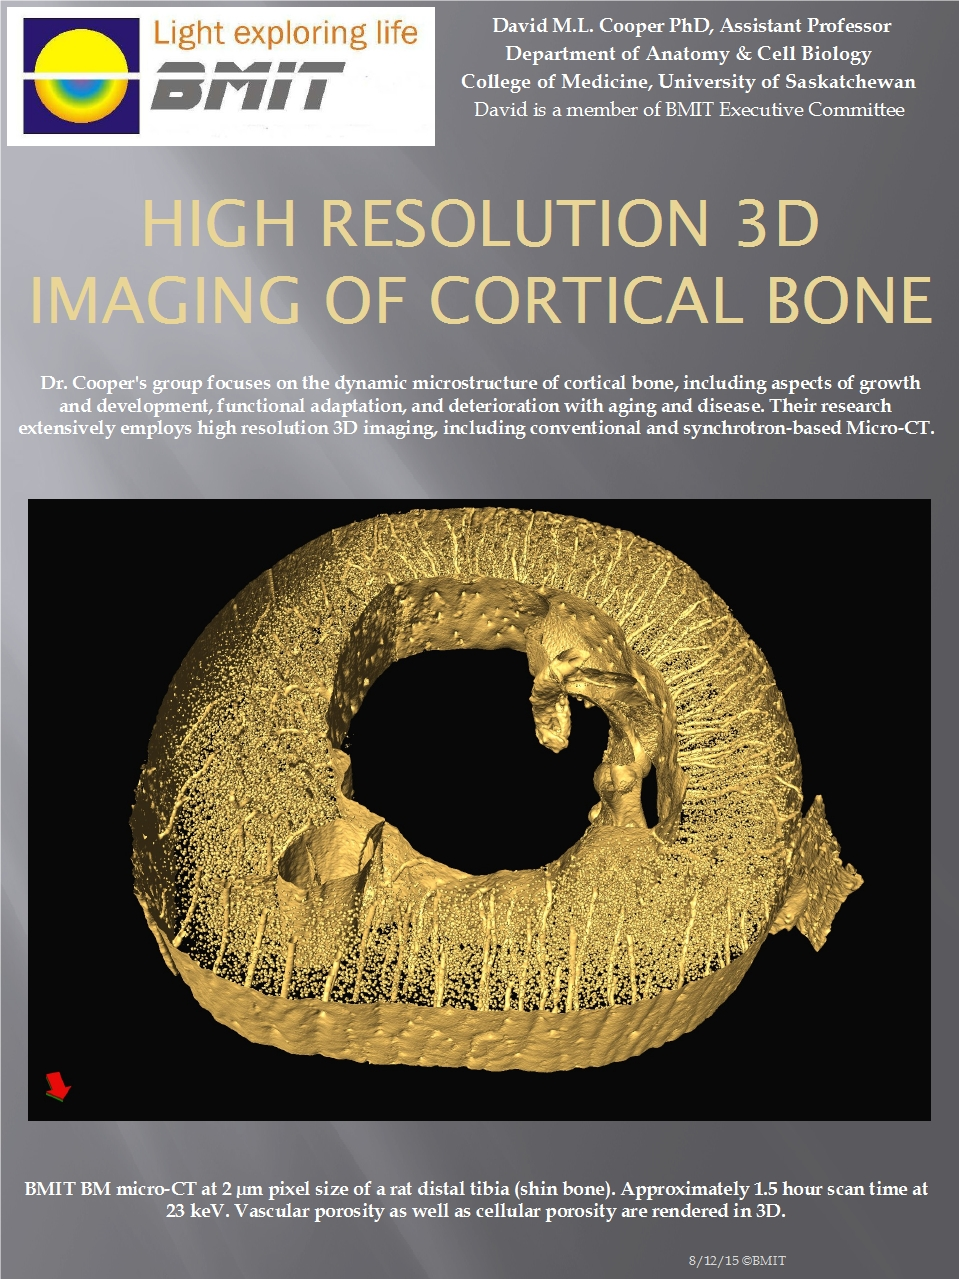 High Resolution 3D Imaging of Cortical Bone Image